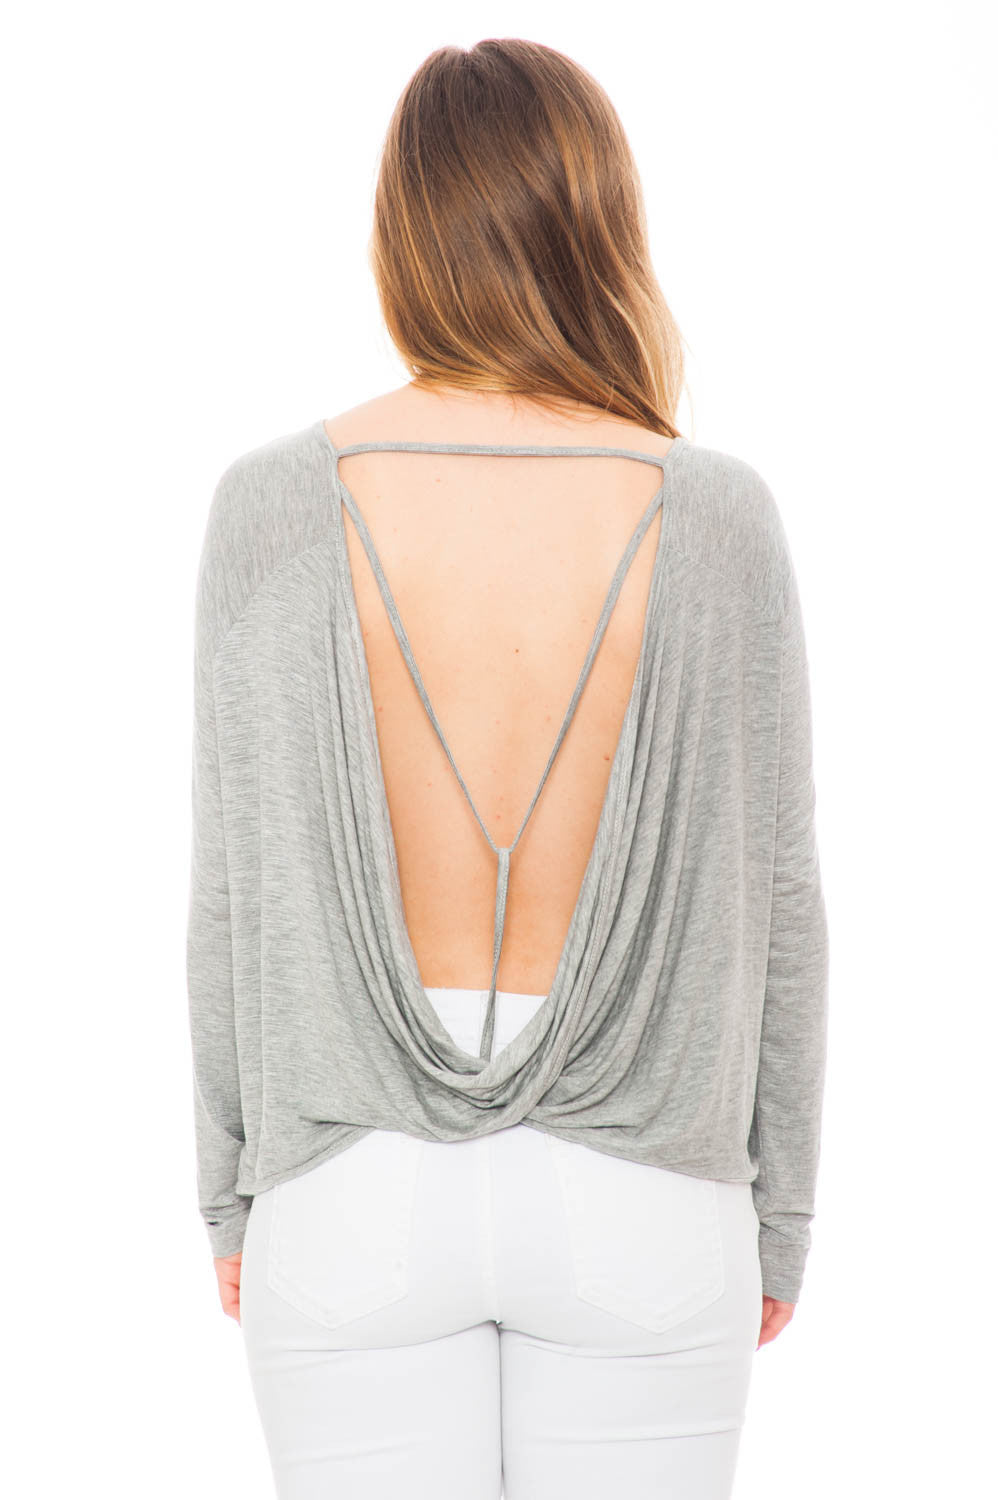 Shirt - Long Sleeve Top with an Open Back